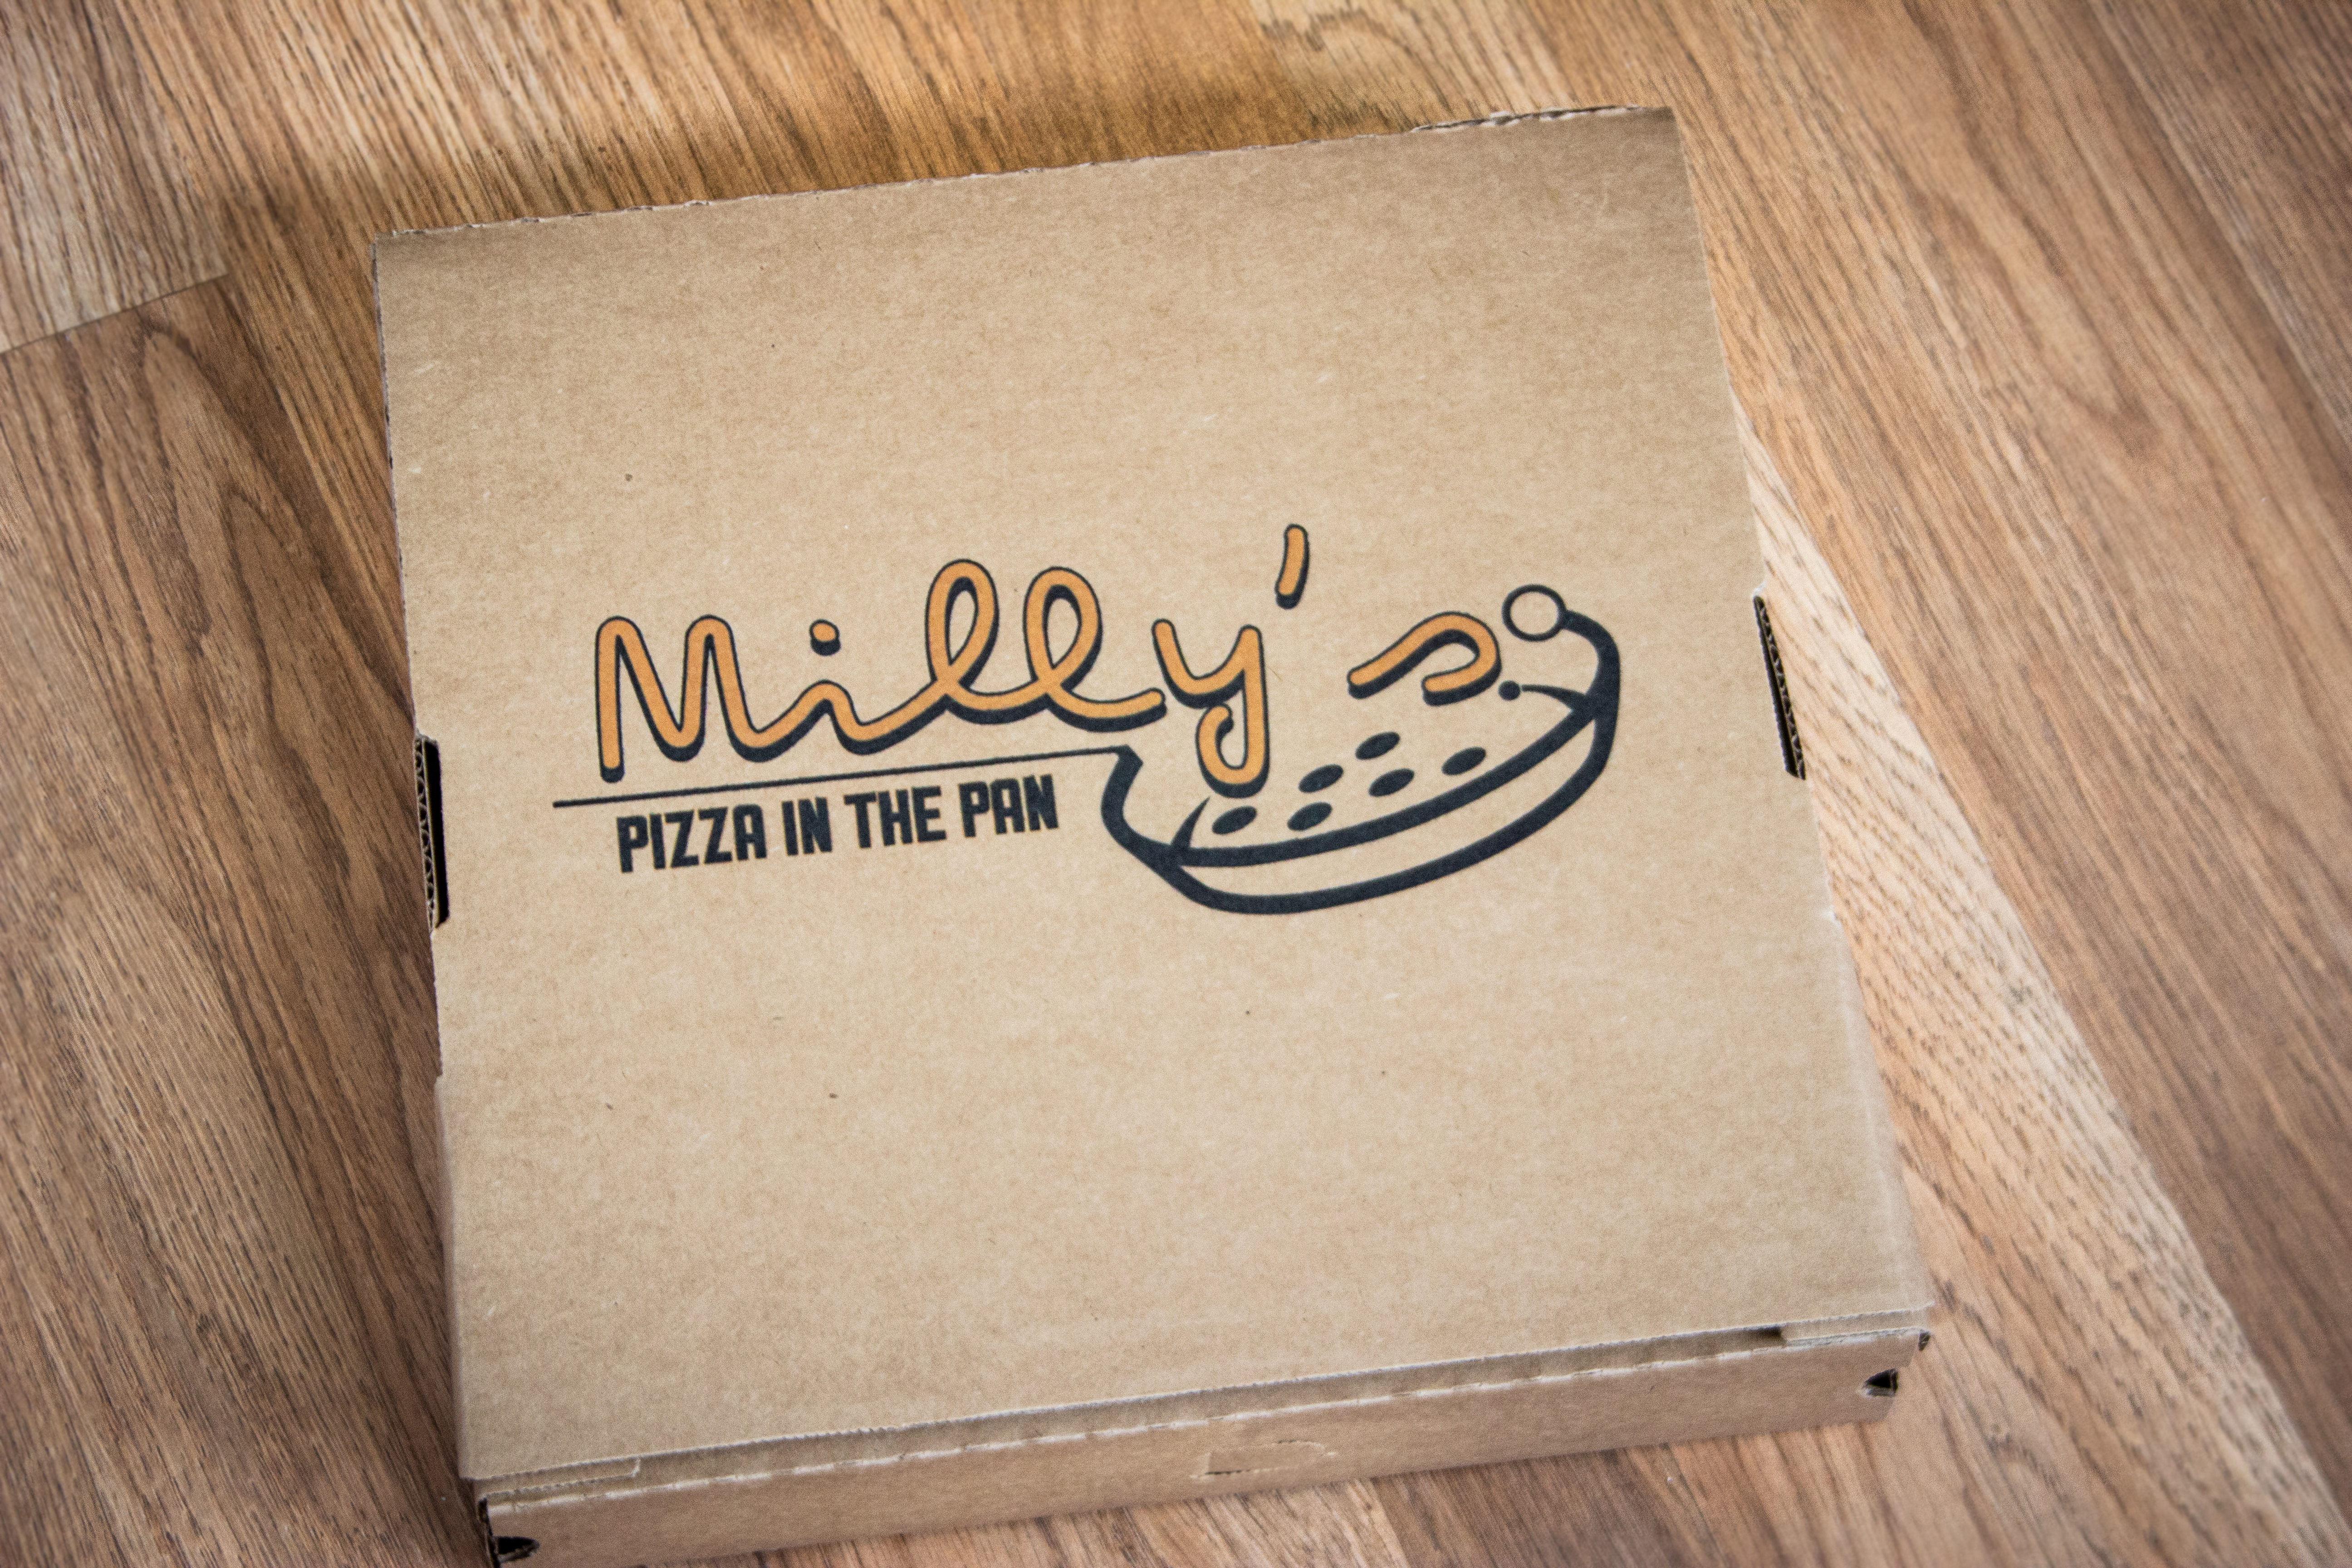 Milly's Pizza